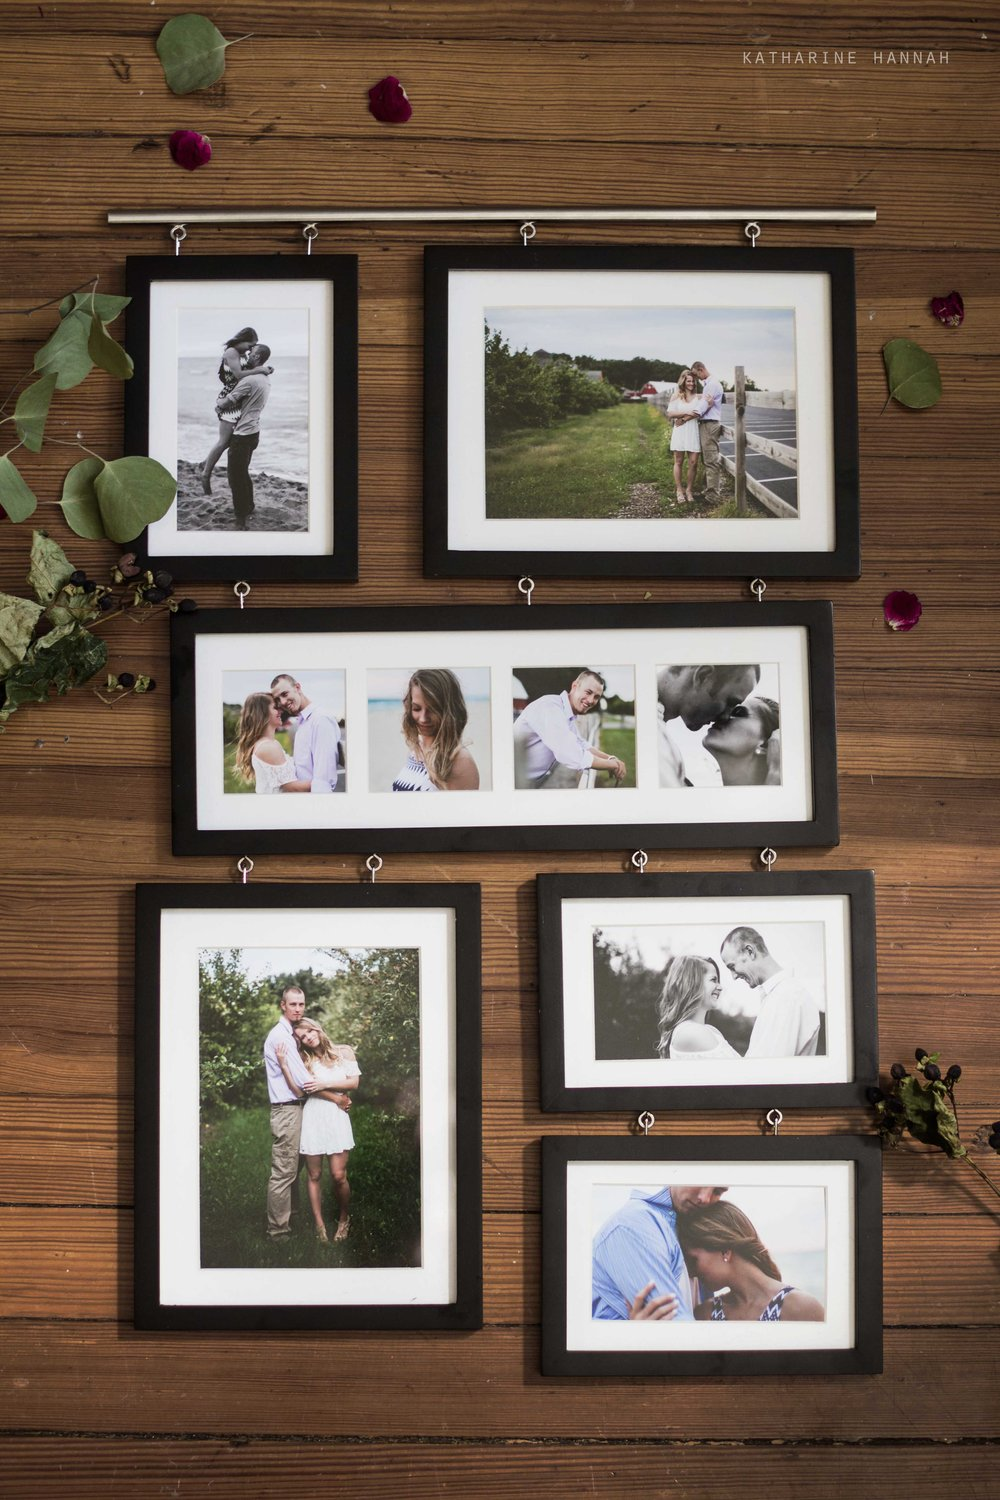 Displaying photos prominently in the home sends the message that our family and those in it are important to one another, and we honor the memories we have experienced. - - Cathy Lander-Goldberg